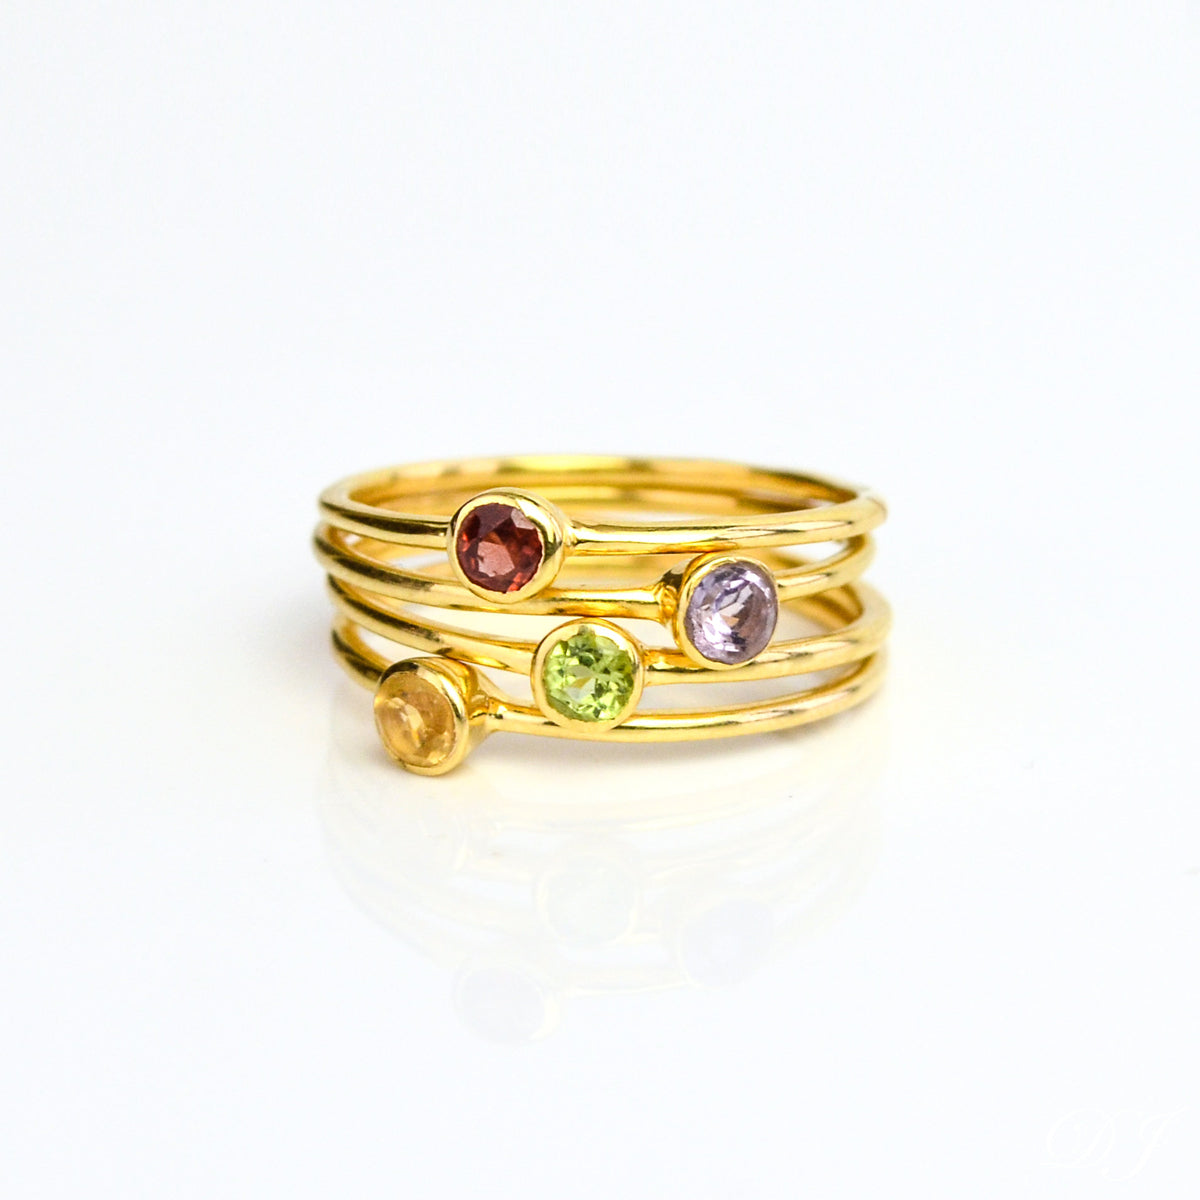 Stack Ring,Tiny Stones Ring,Gold Ring,Dainty Ring,Yellow Ring,November Birthstone,Gift For Her Citrine Ring SALE